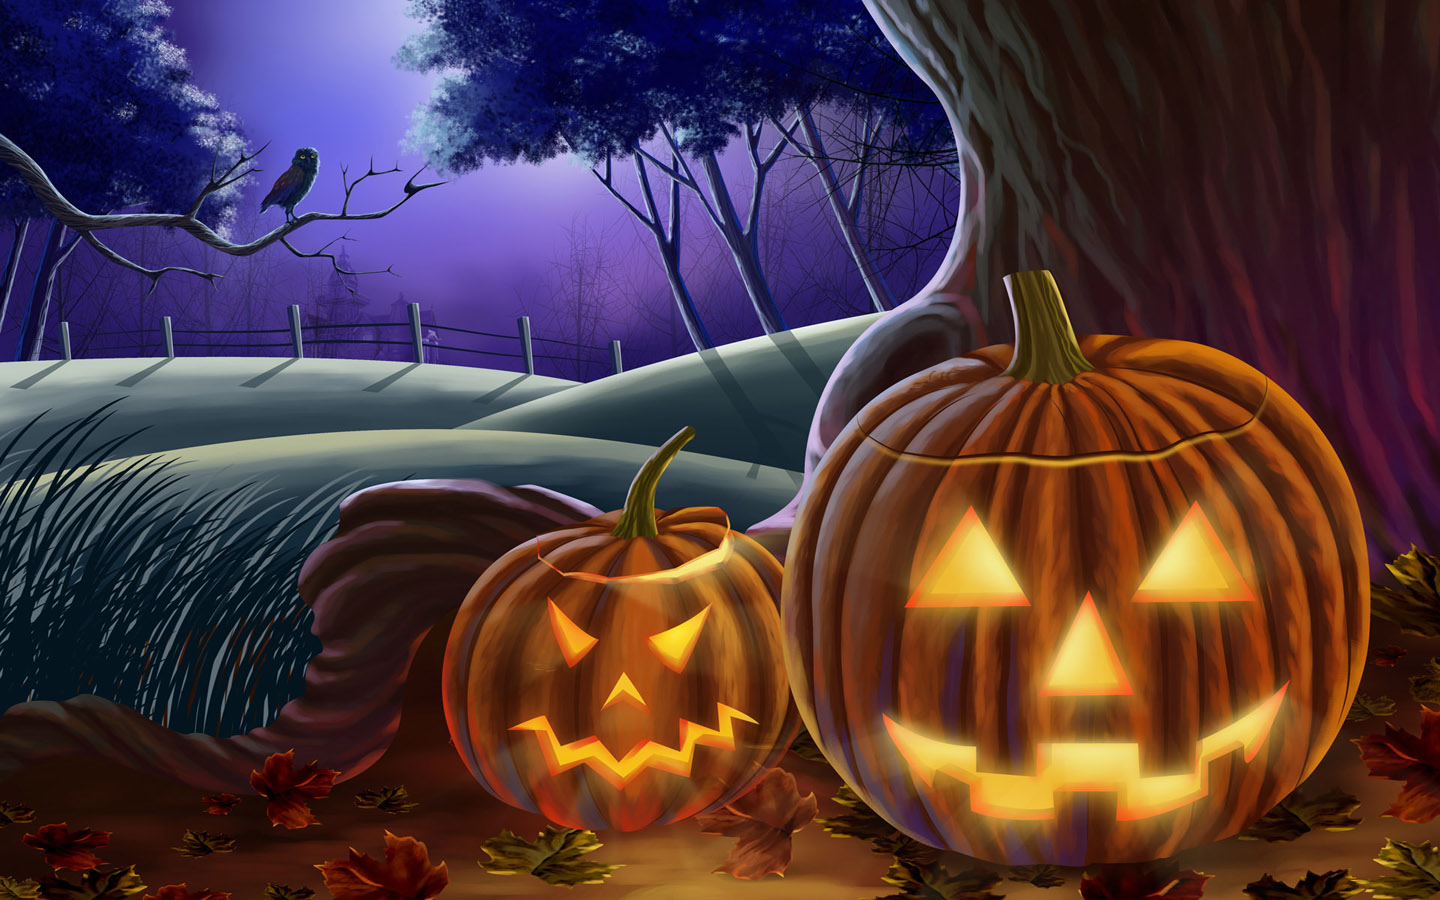 45 Scary Halloween 2012 HD Wallpapers Pumpkins Witches Spider Web 1440x900